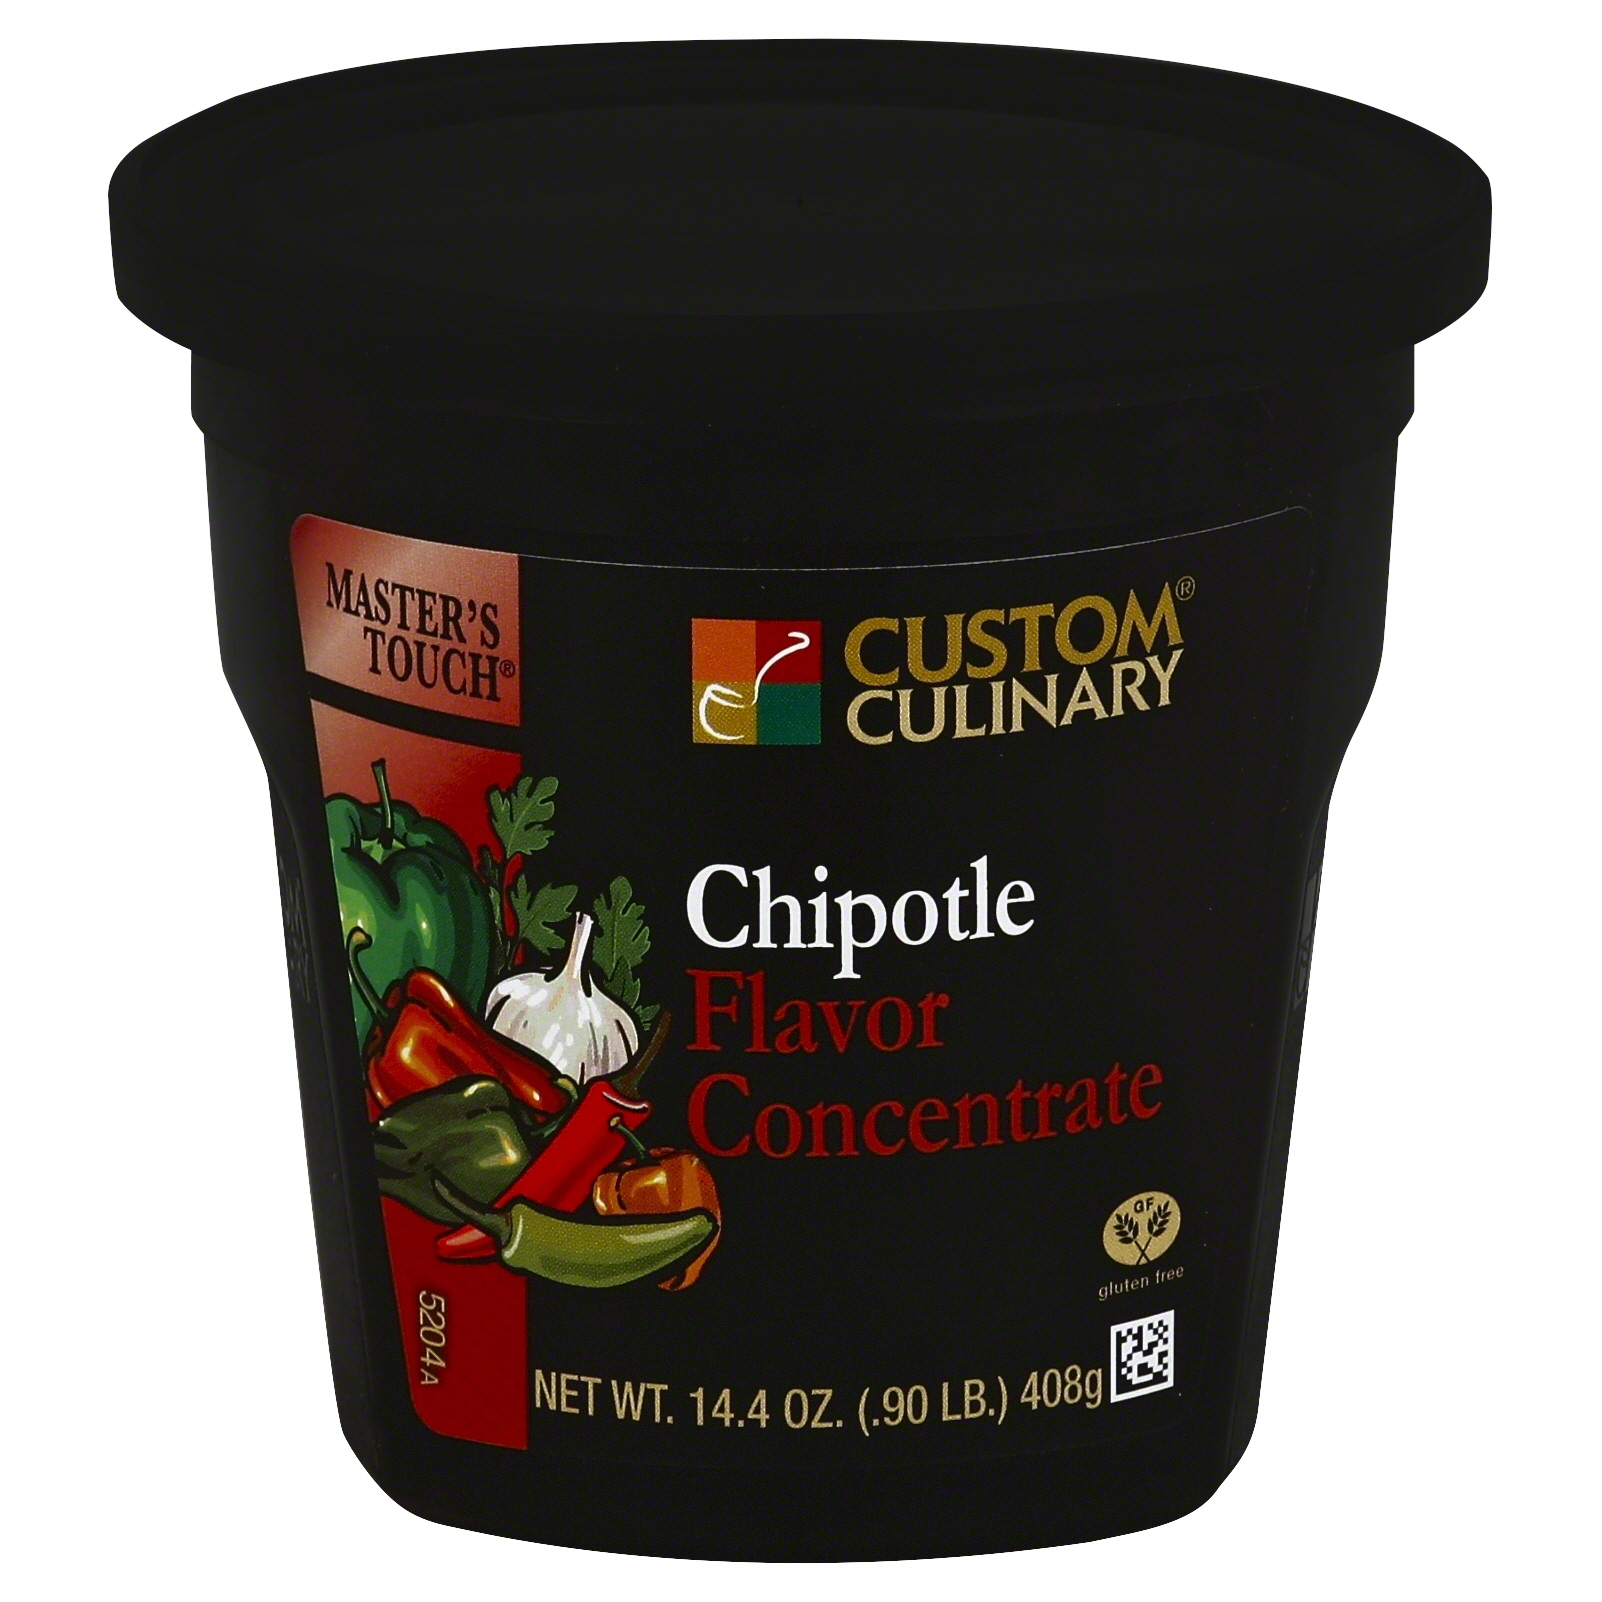 5204 - Masters Touch Chipotle Flavor Concentrate